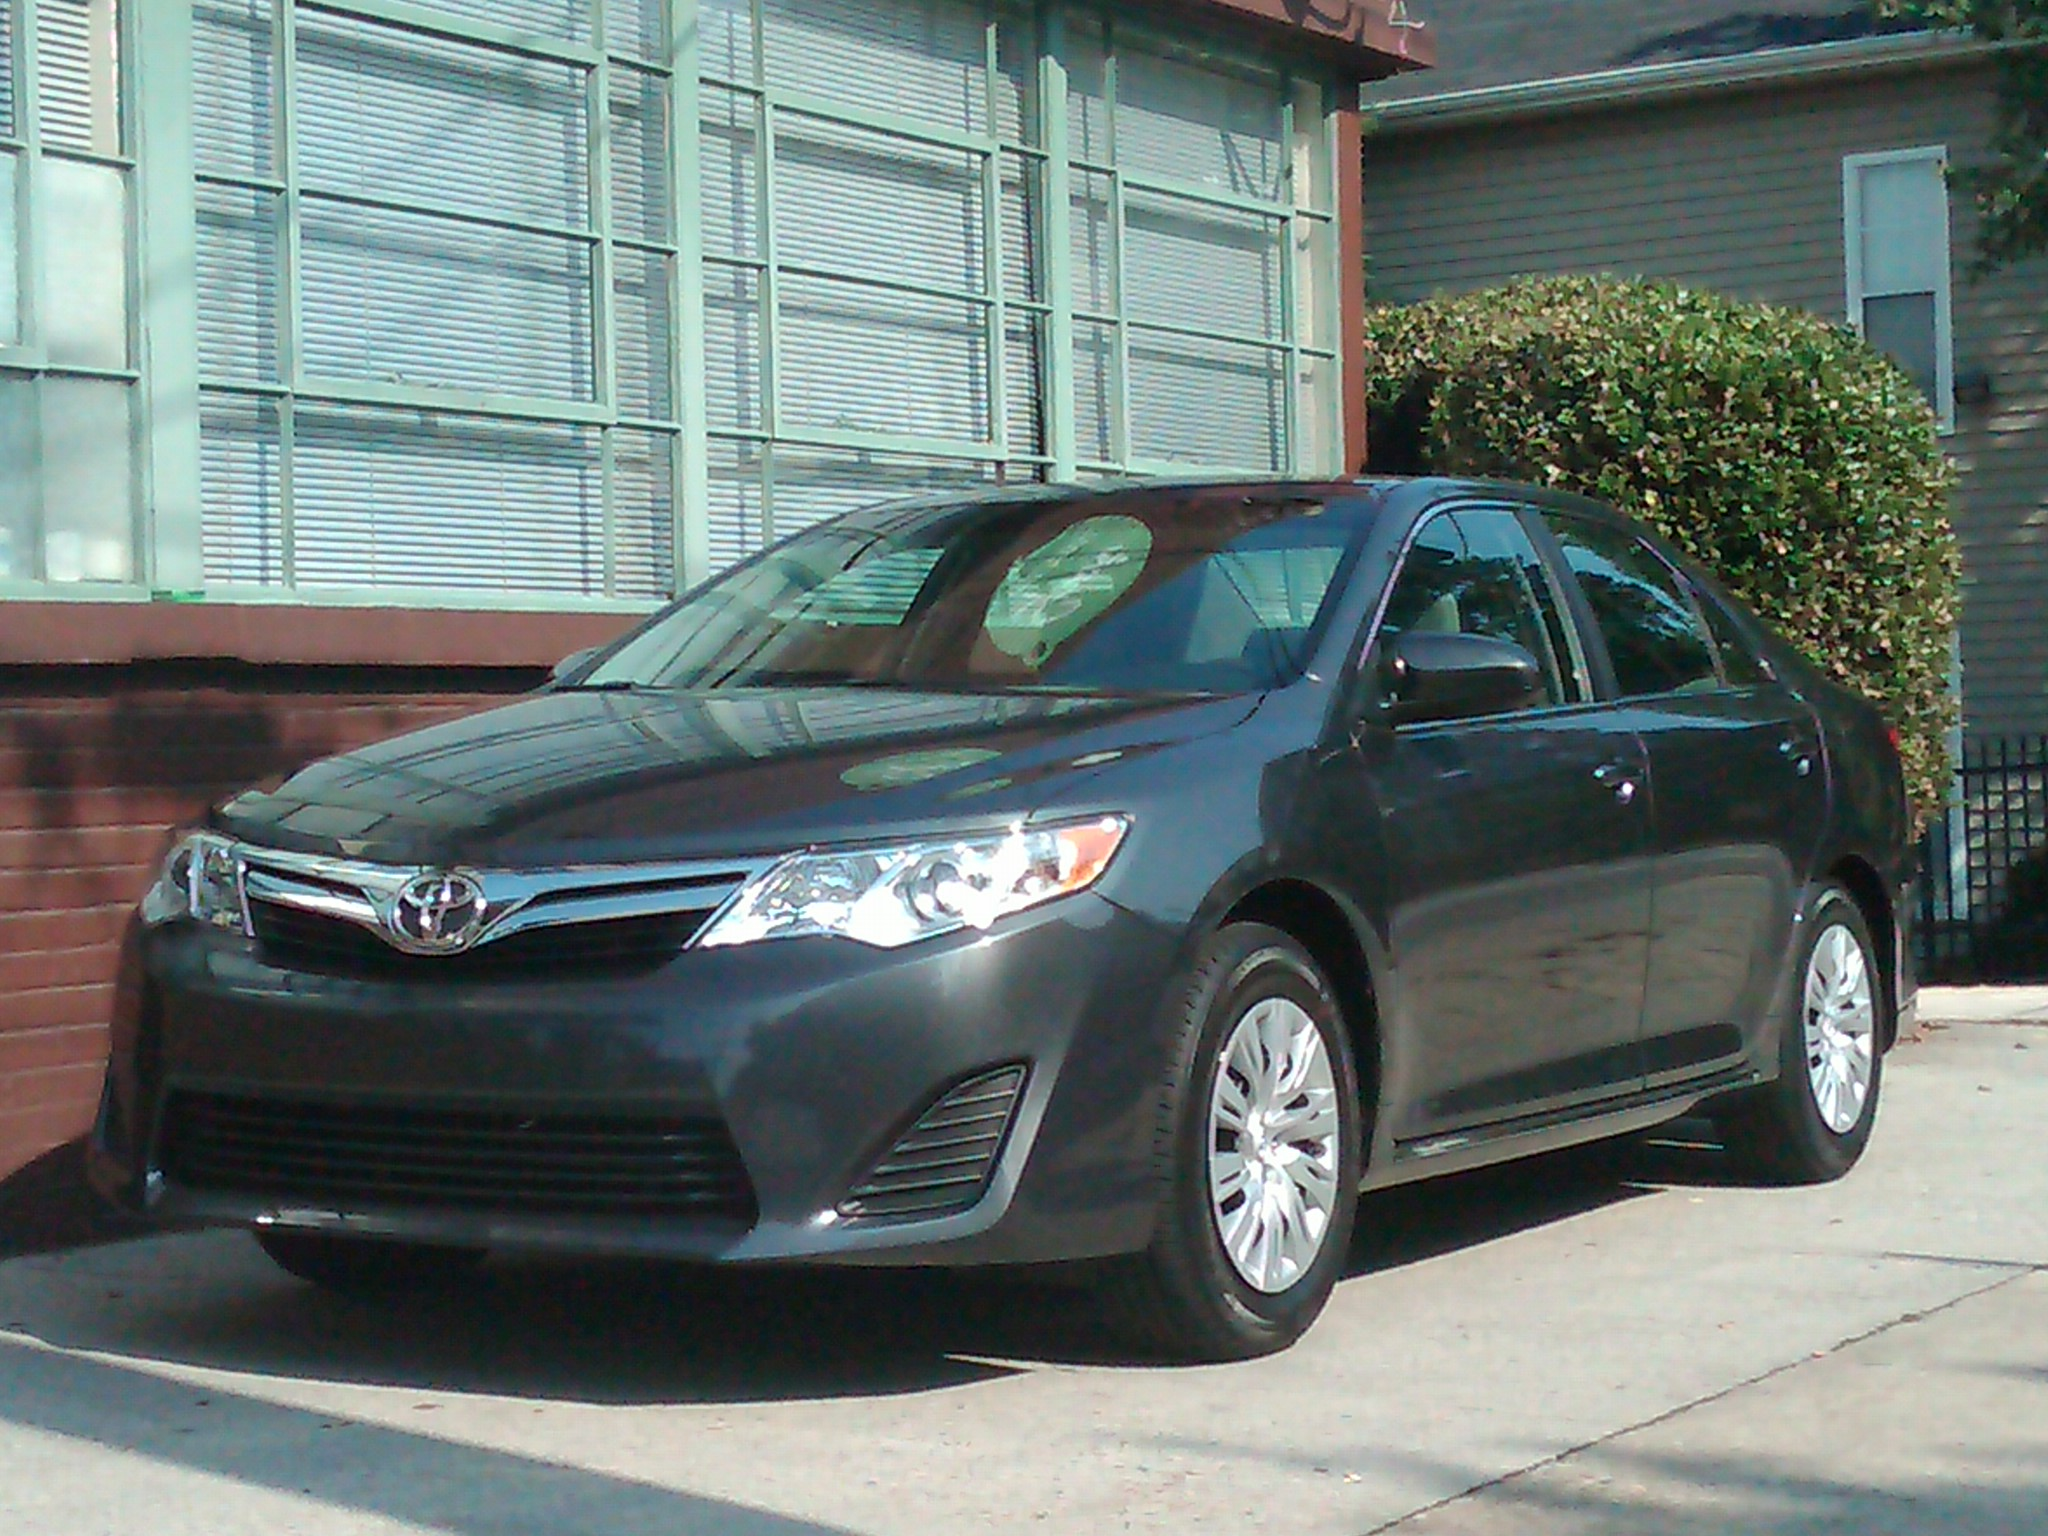 2012 toyota camry le first look nick palermo. Black Bedroom Furniture Sets. Home Design Ideas